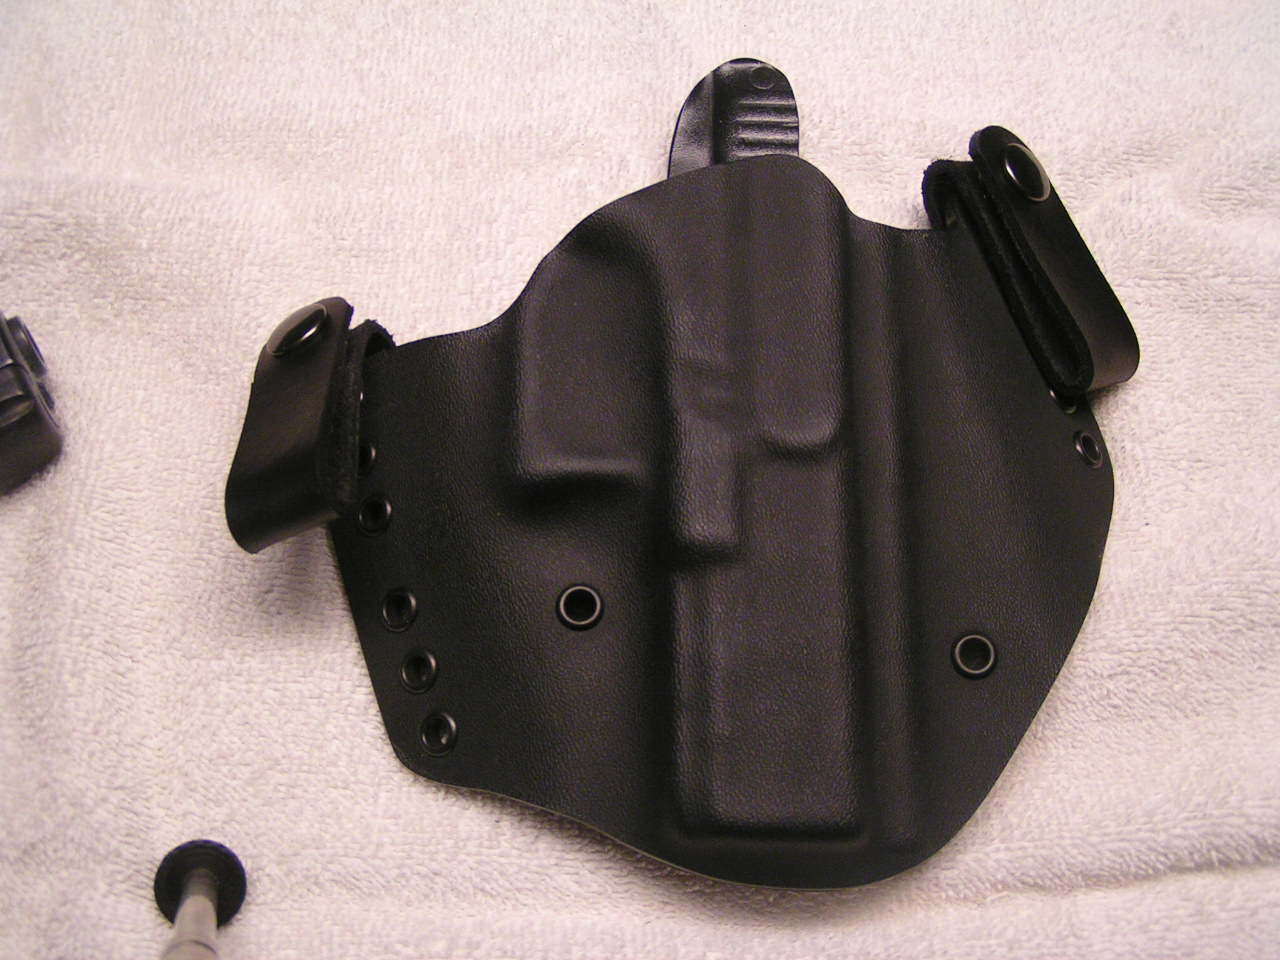 The Perfect Kydex IWB Holster-midworld-17-holster-009.jpg